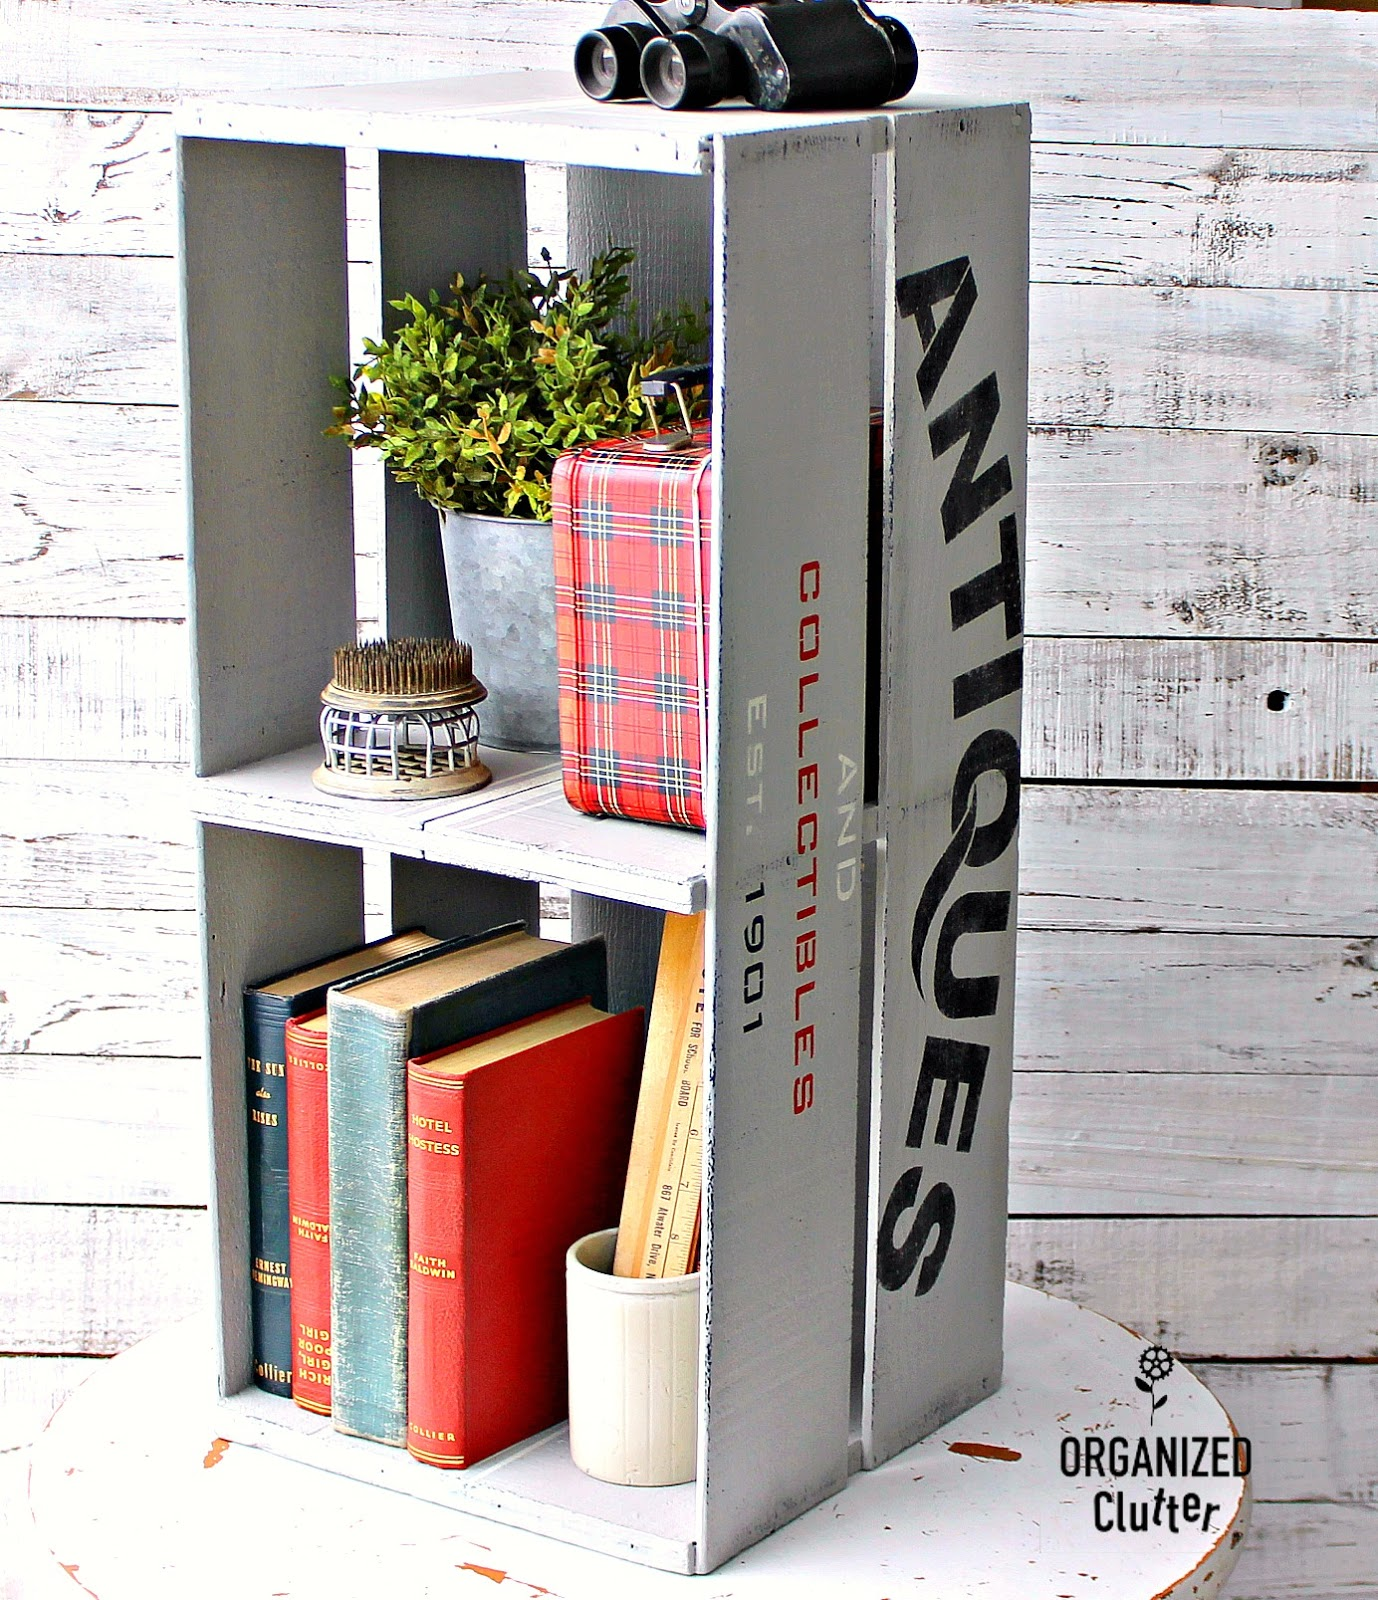 Antiques crate shelving by Organized Clutter, featured on Funky Junk's DIY Salvaged Junk Projects 509